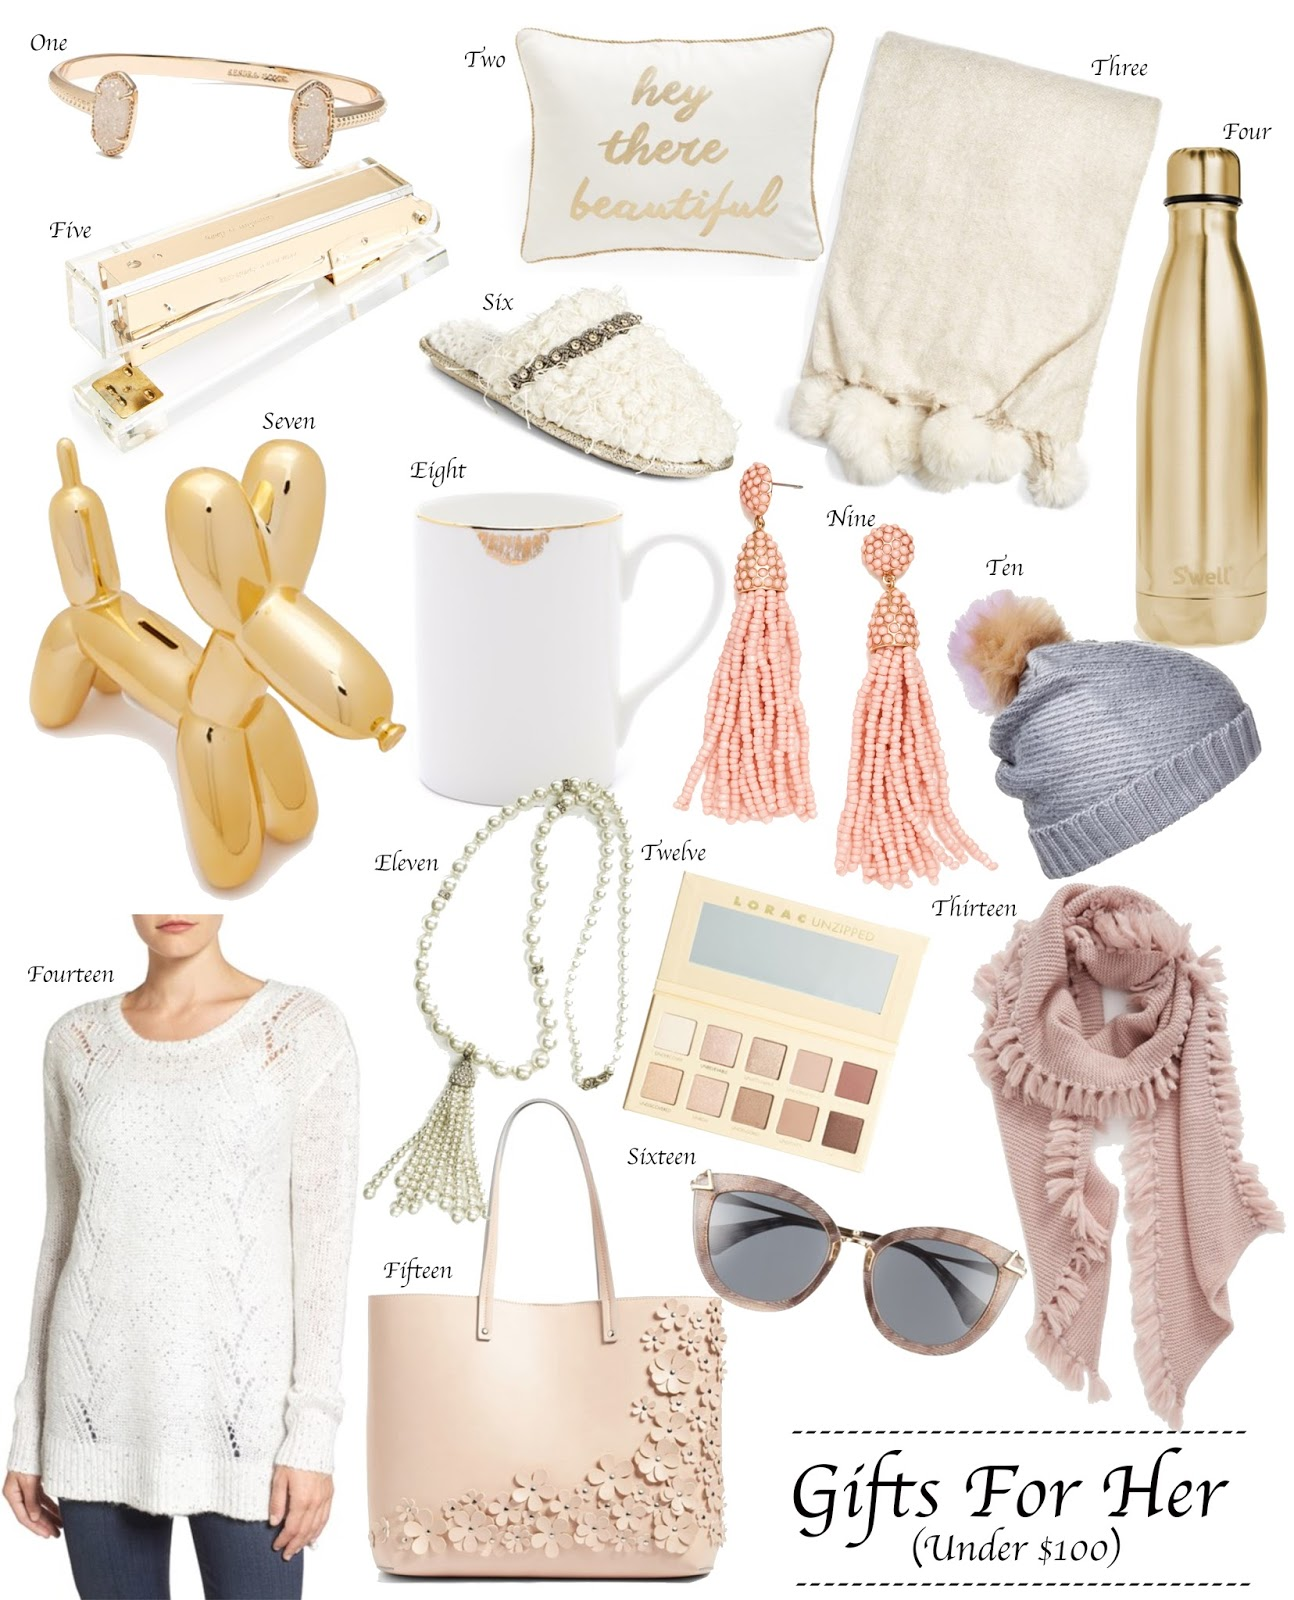 Gifts For Her (Under $100) - Something Delightful Blog